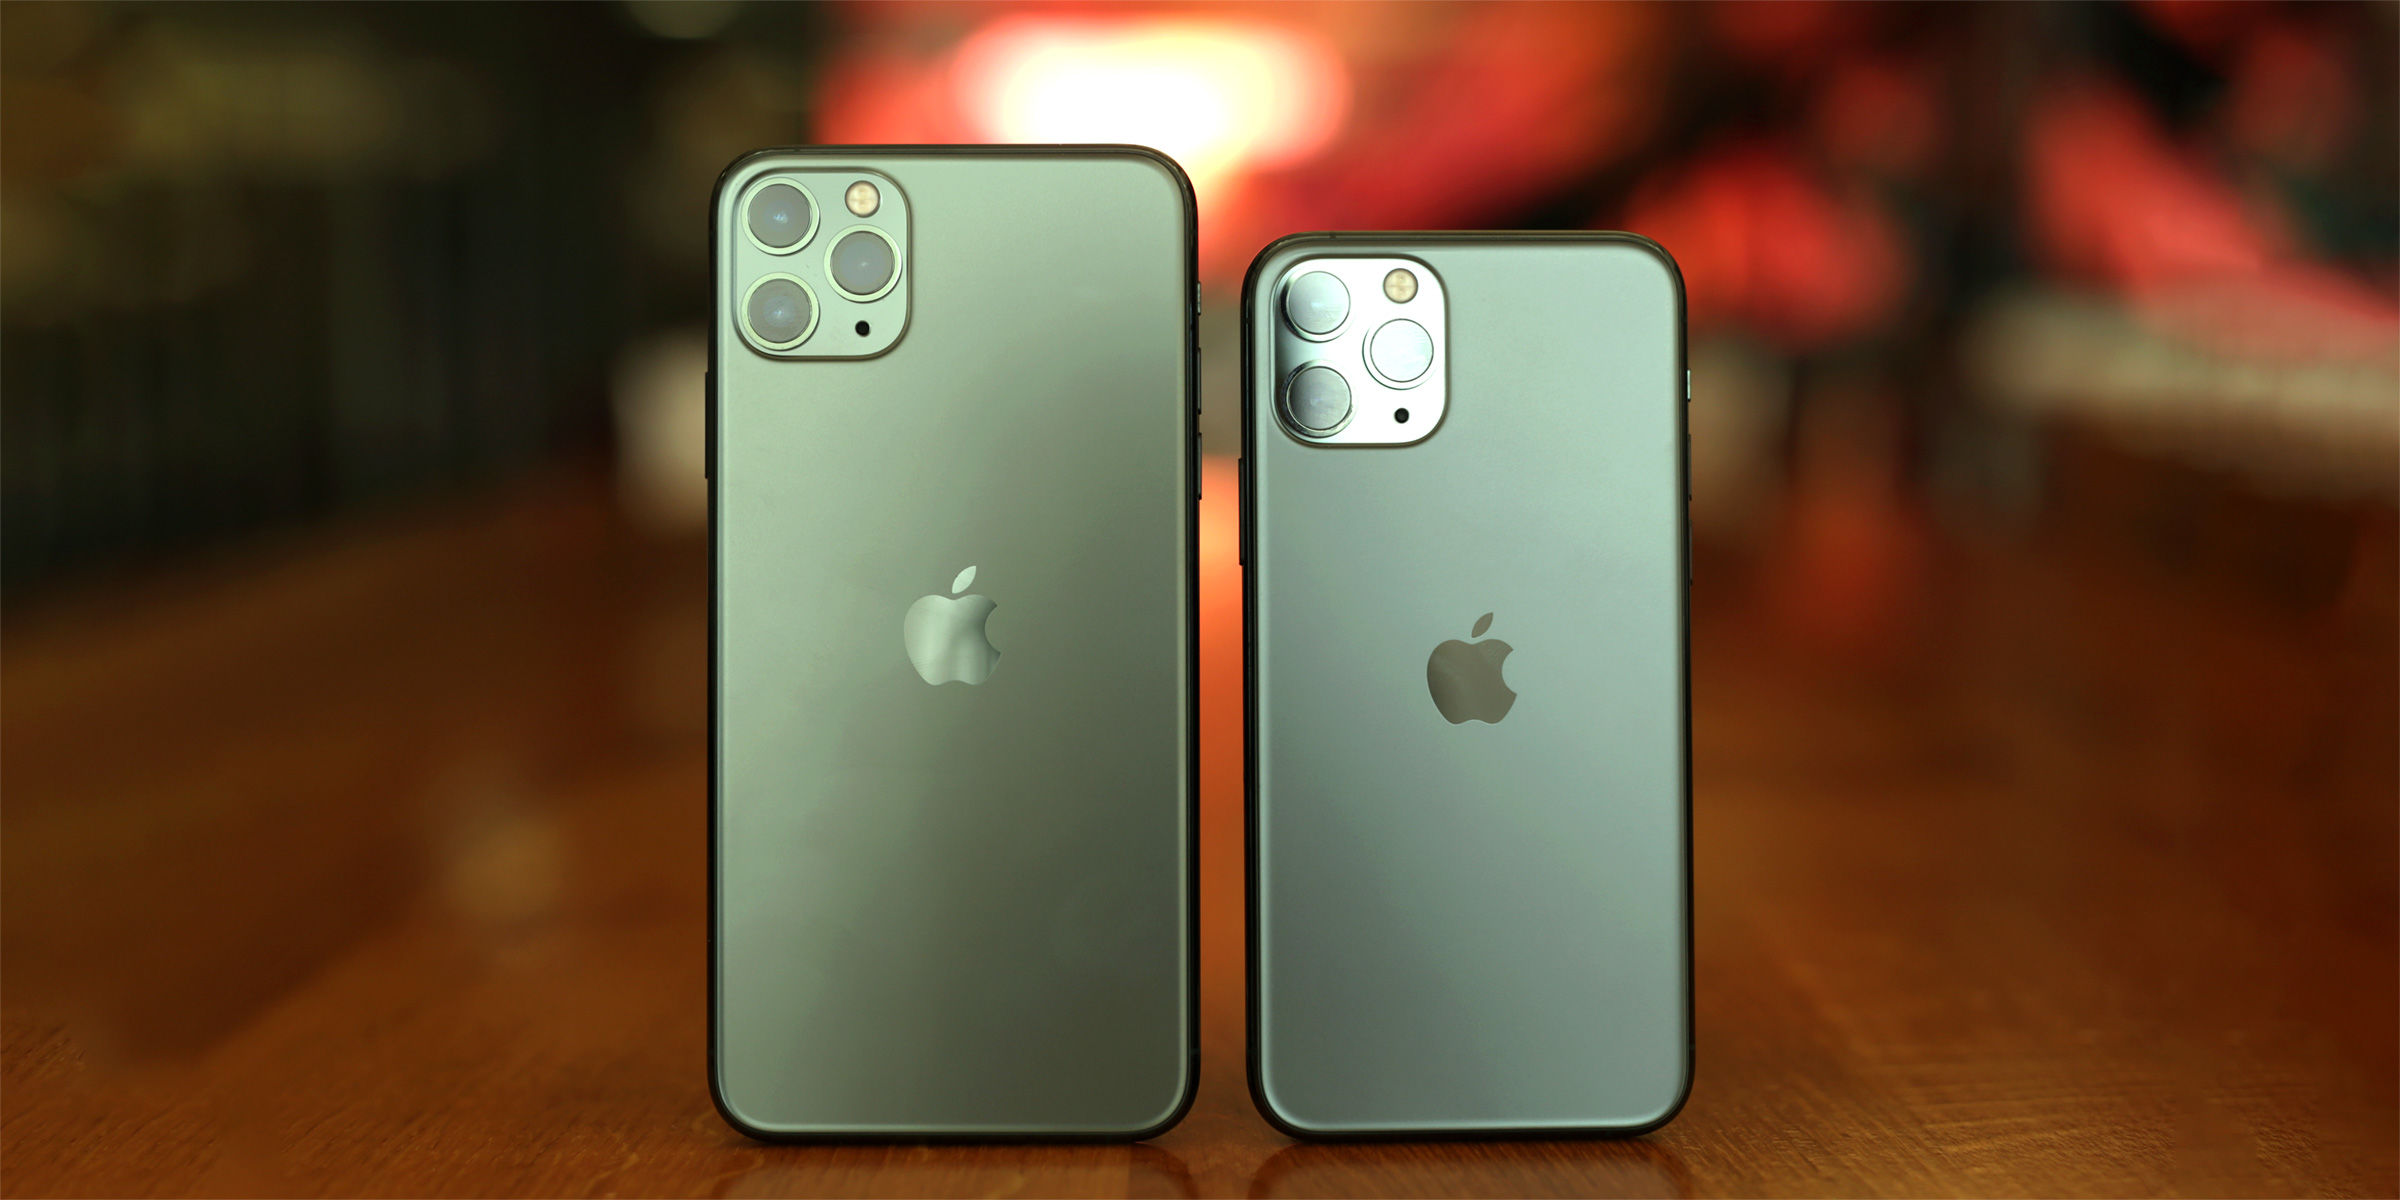 iPhone 11 Pro review roundup: the best cameras in an iPhone to date | Mid Atlantic Consulting Blog